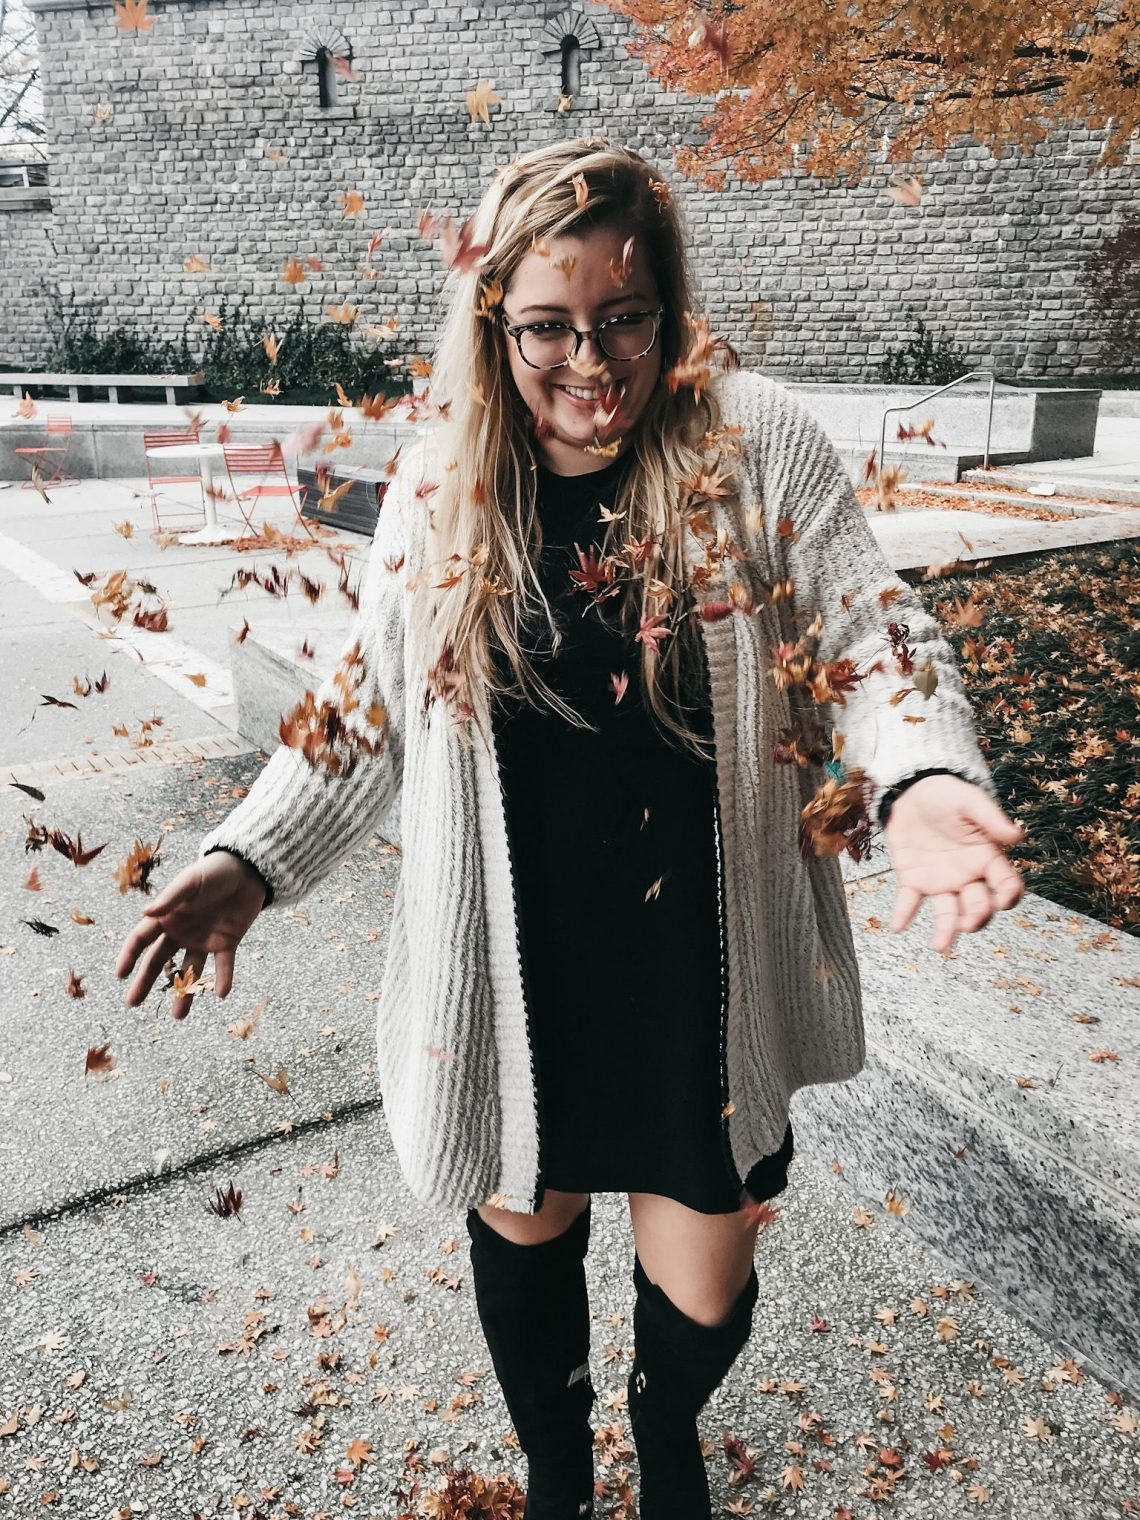 Its fall and I had tossed fallen leaves and they are falling on me and I am smiling wearing a white dress, black boots, and grey sweater